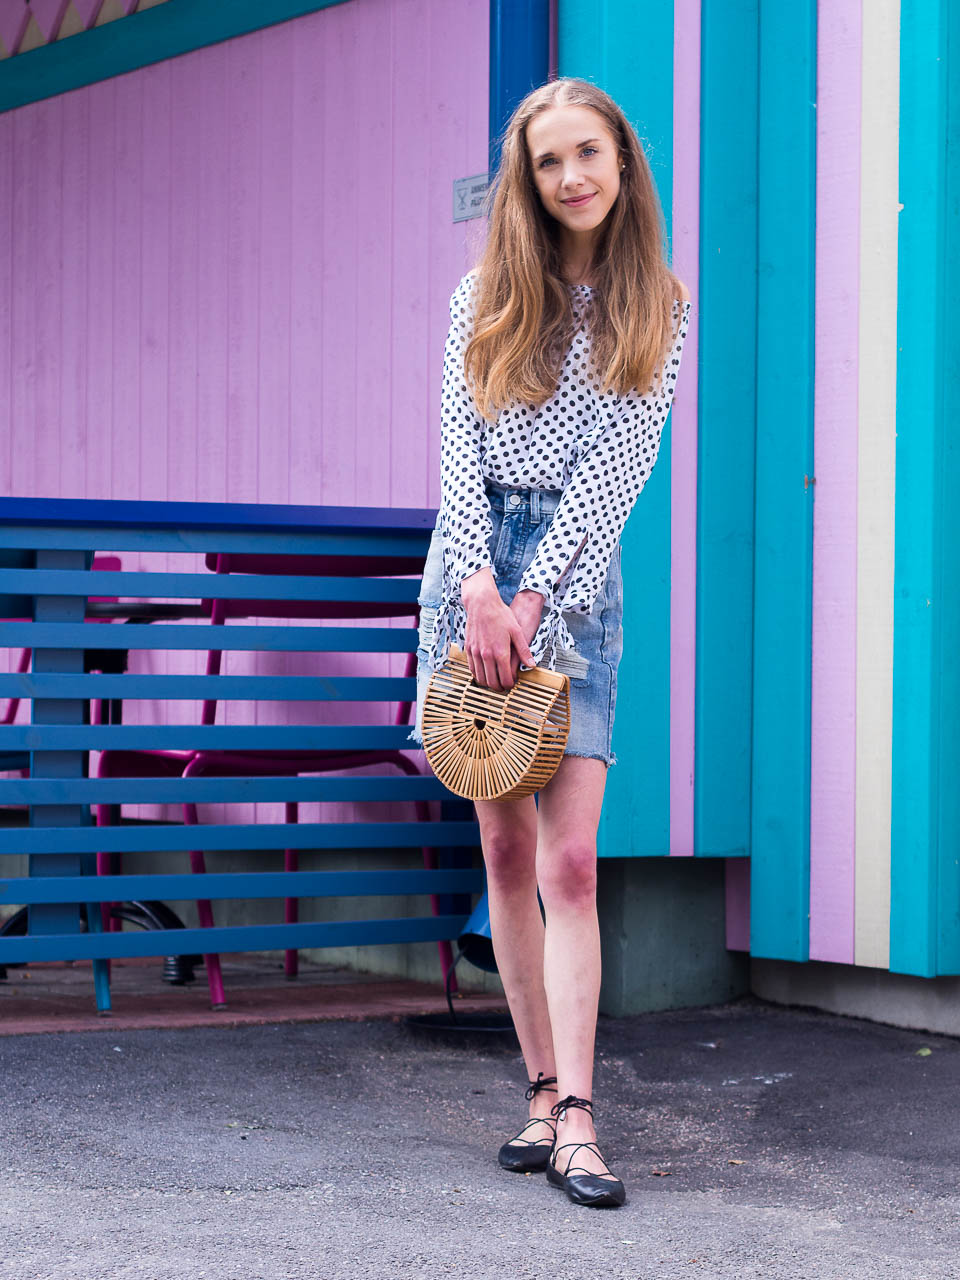 denim-skirt-polka-dot-top-summer-outfit-fashion-blogger